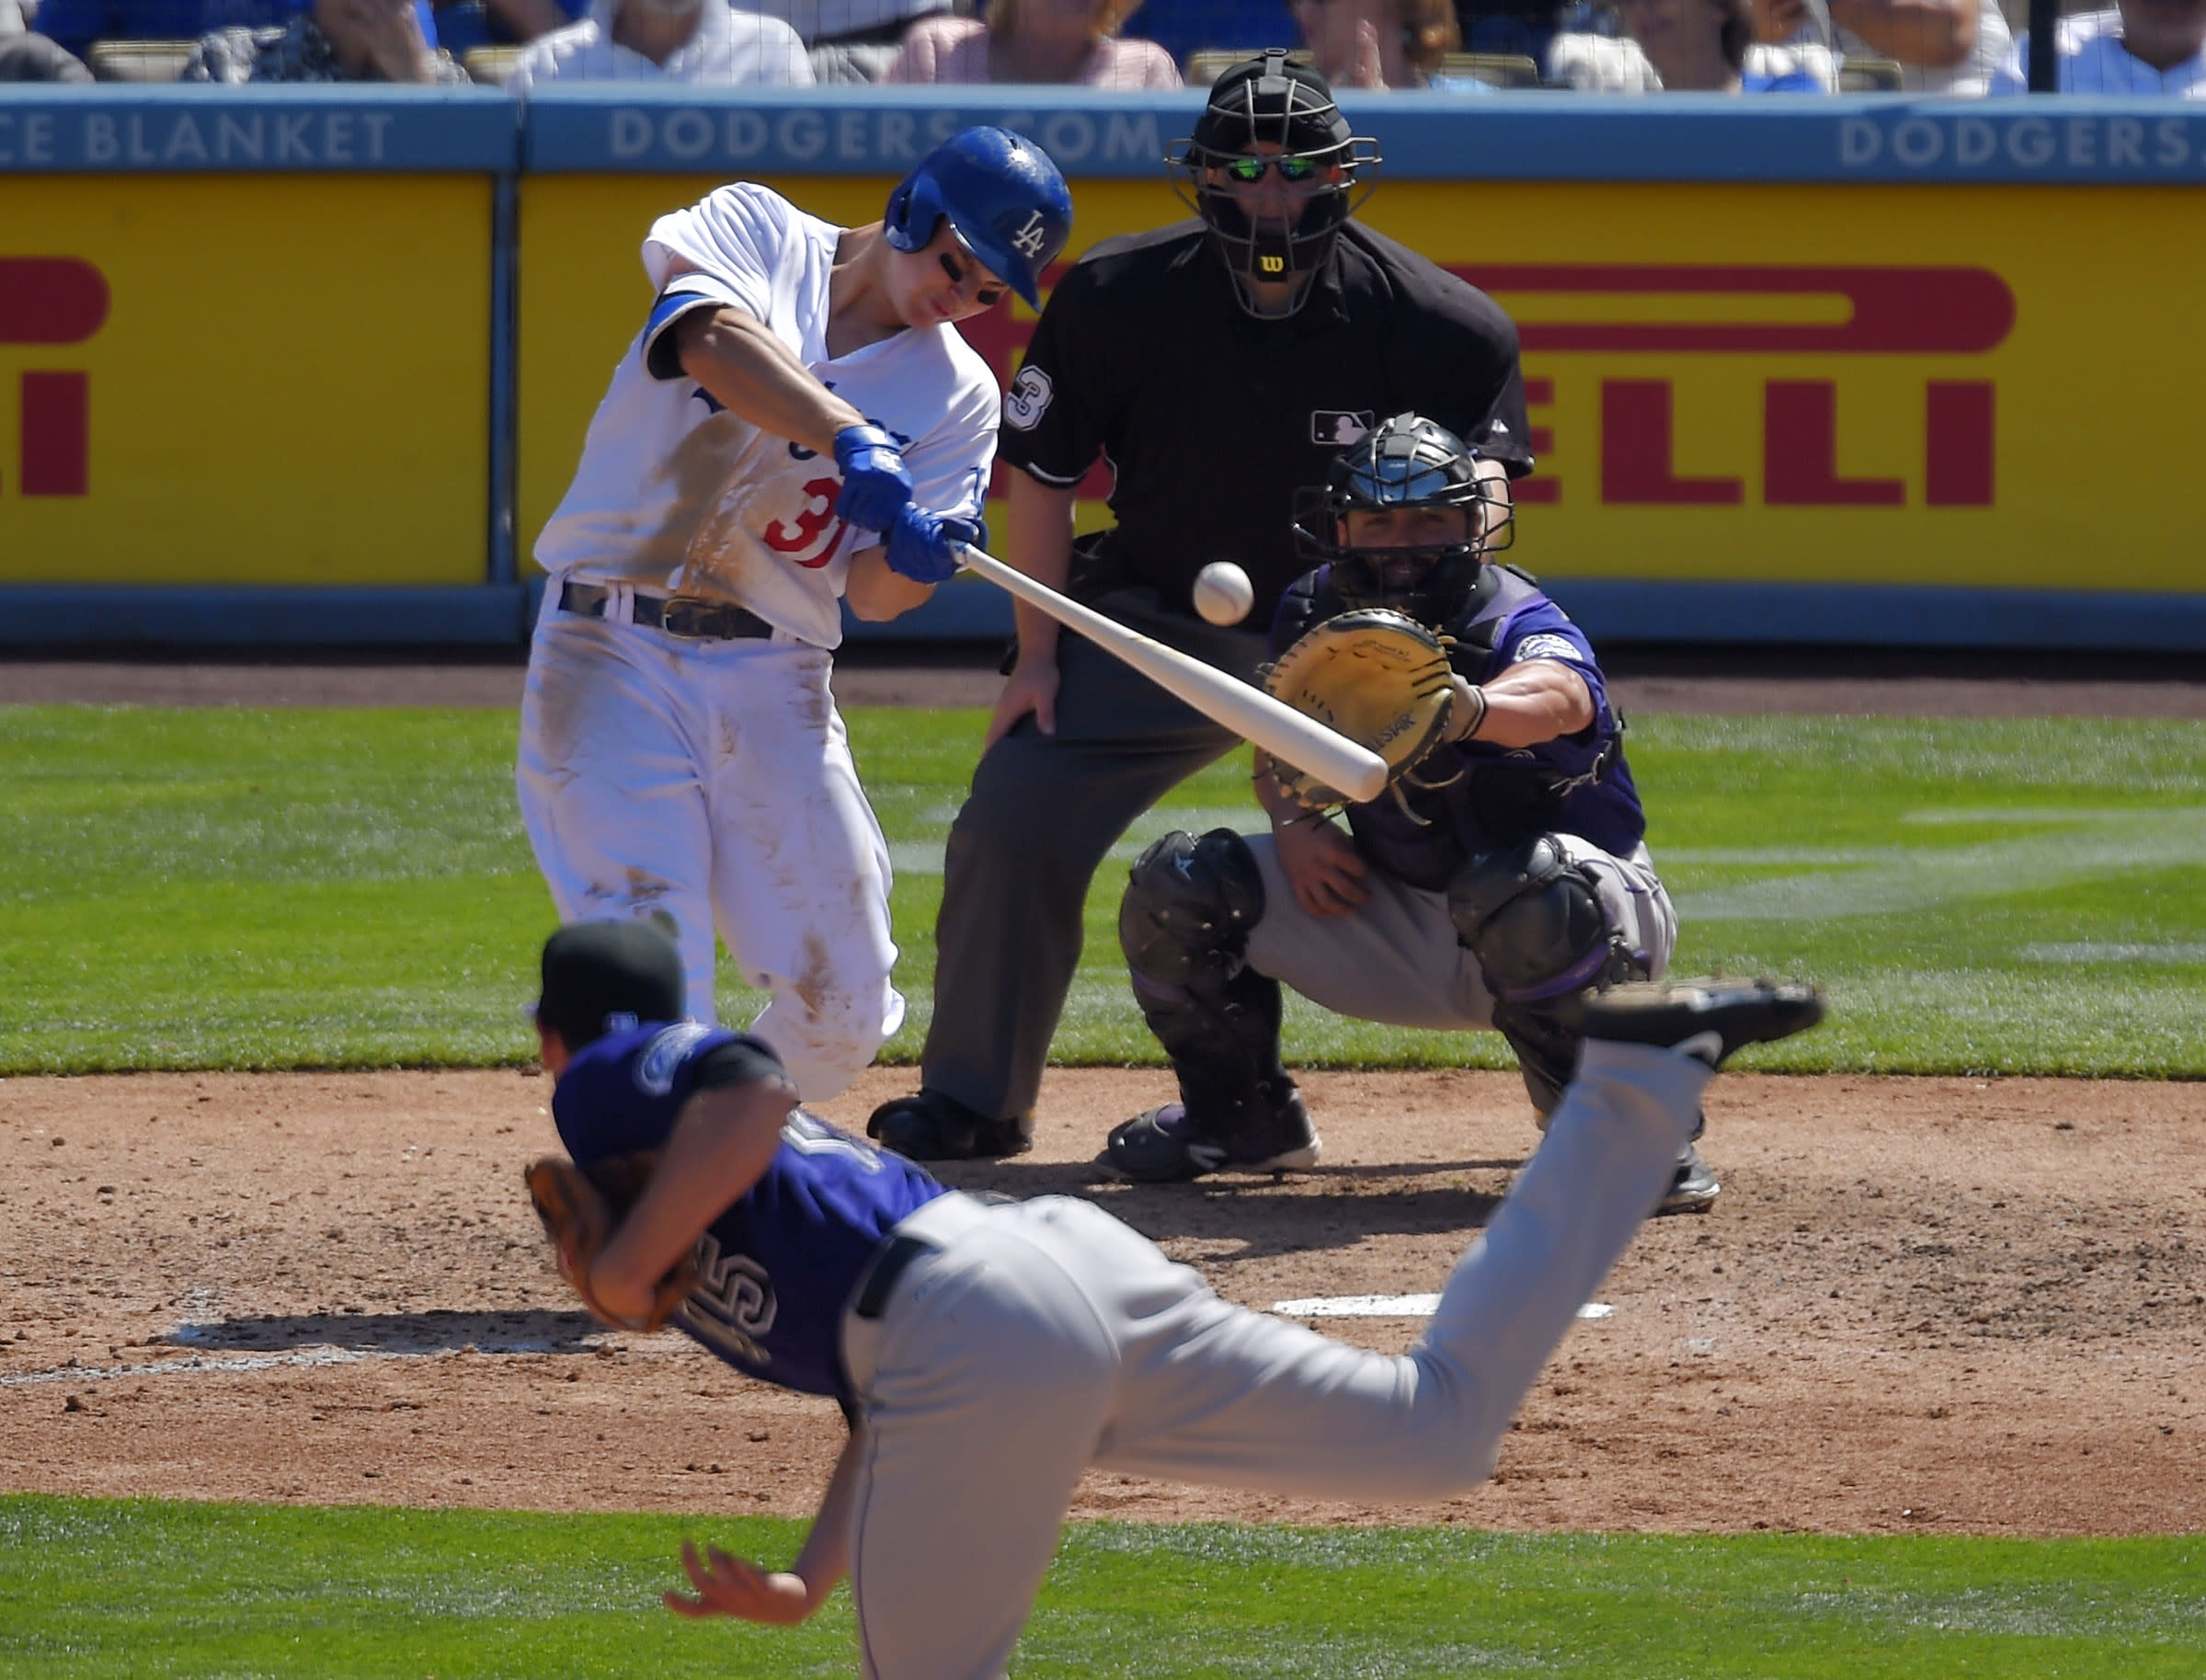 Dodgers hit 3 HRs in 6th to rout Rockies 7-0